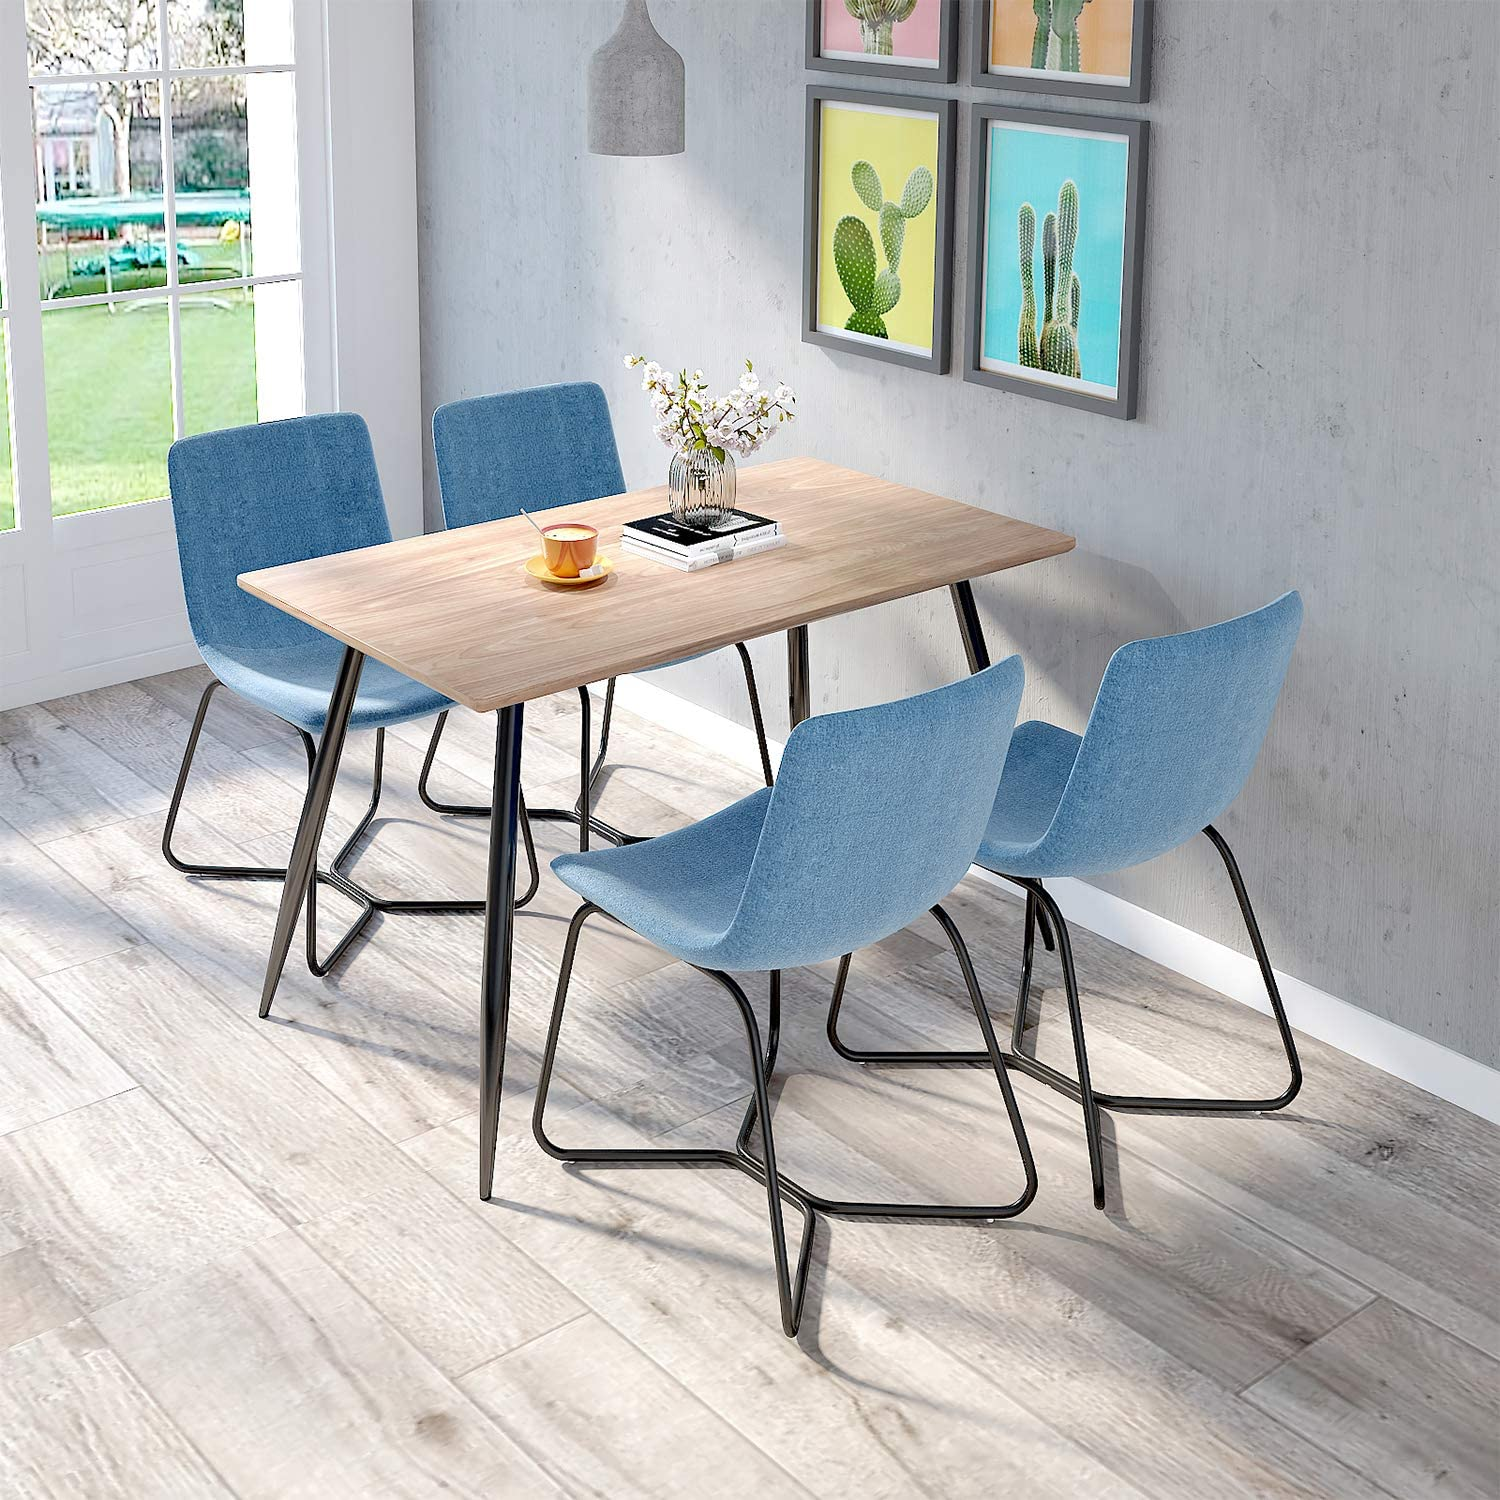 jeffordoutlet Dining Set Table and Chairs, Kitchen Fabric Seat Dining Chairs, Modern Style Metal Legs Dining Set Furniture (table + 4 blue chairs)